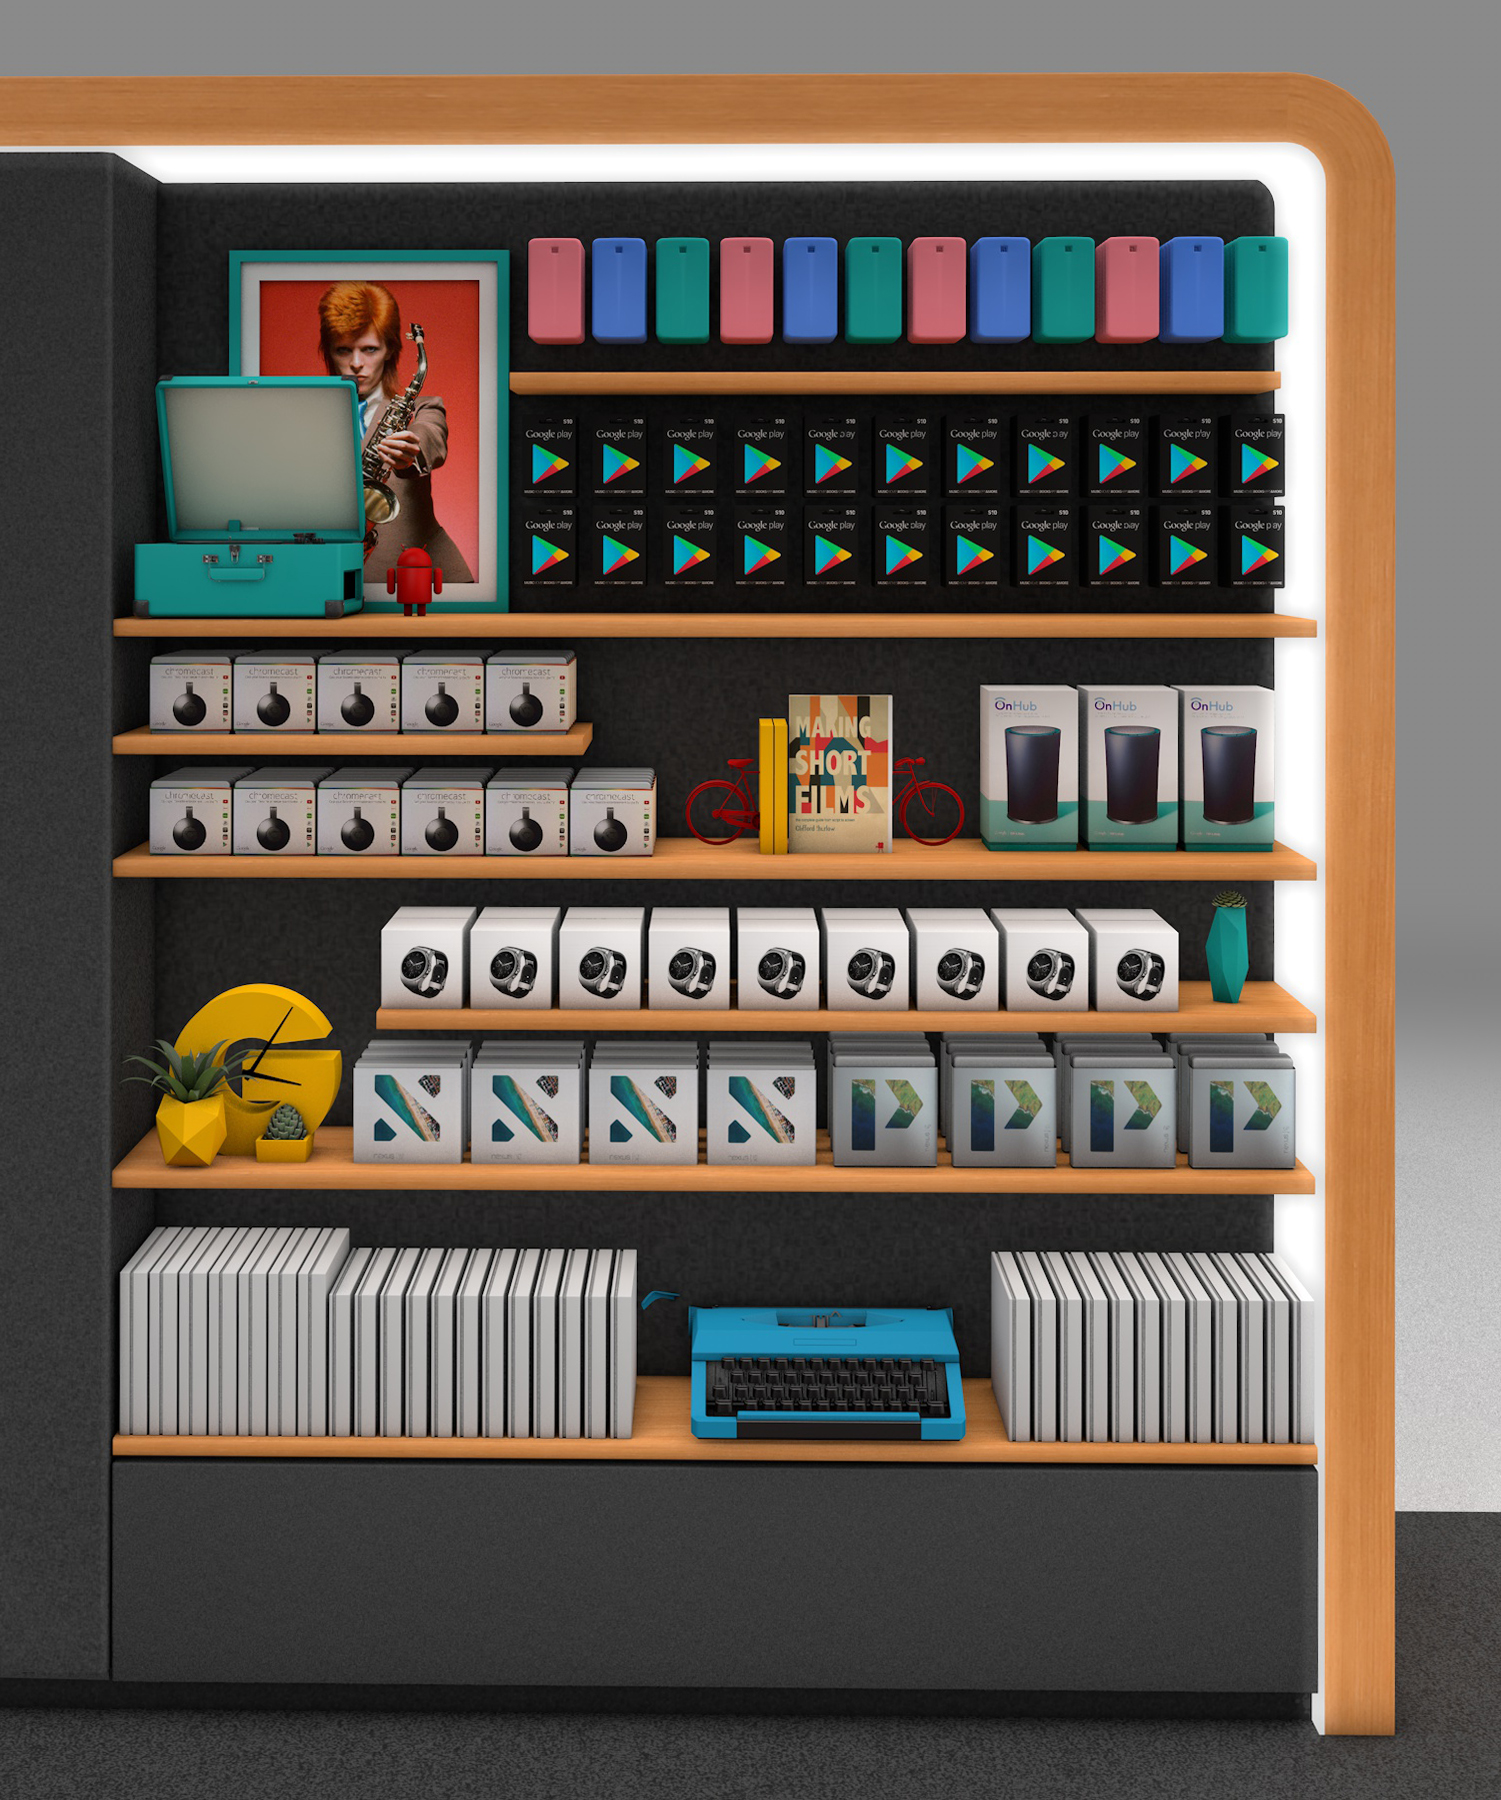 Digital render of google store retail space with various products placed on wall